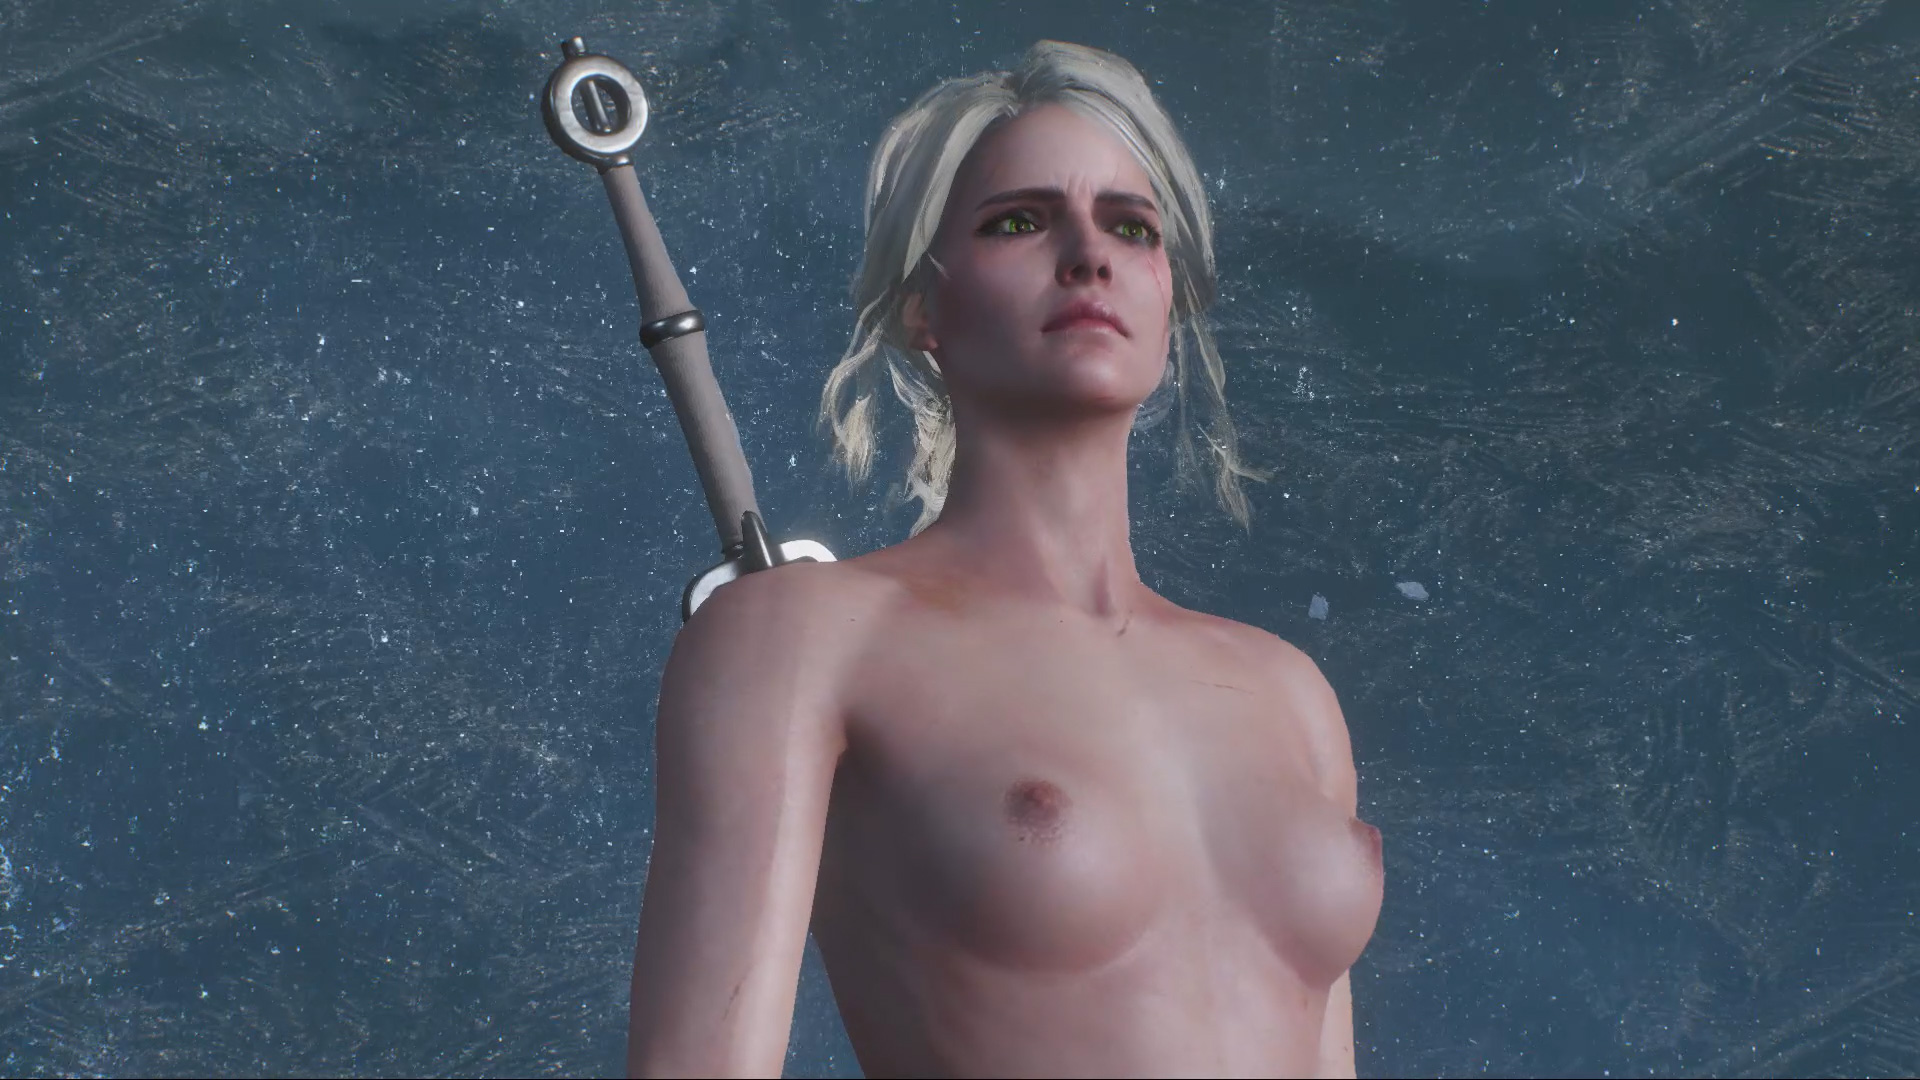 witcher 3 ciri nude